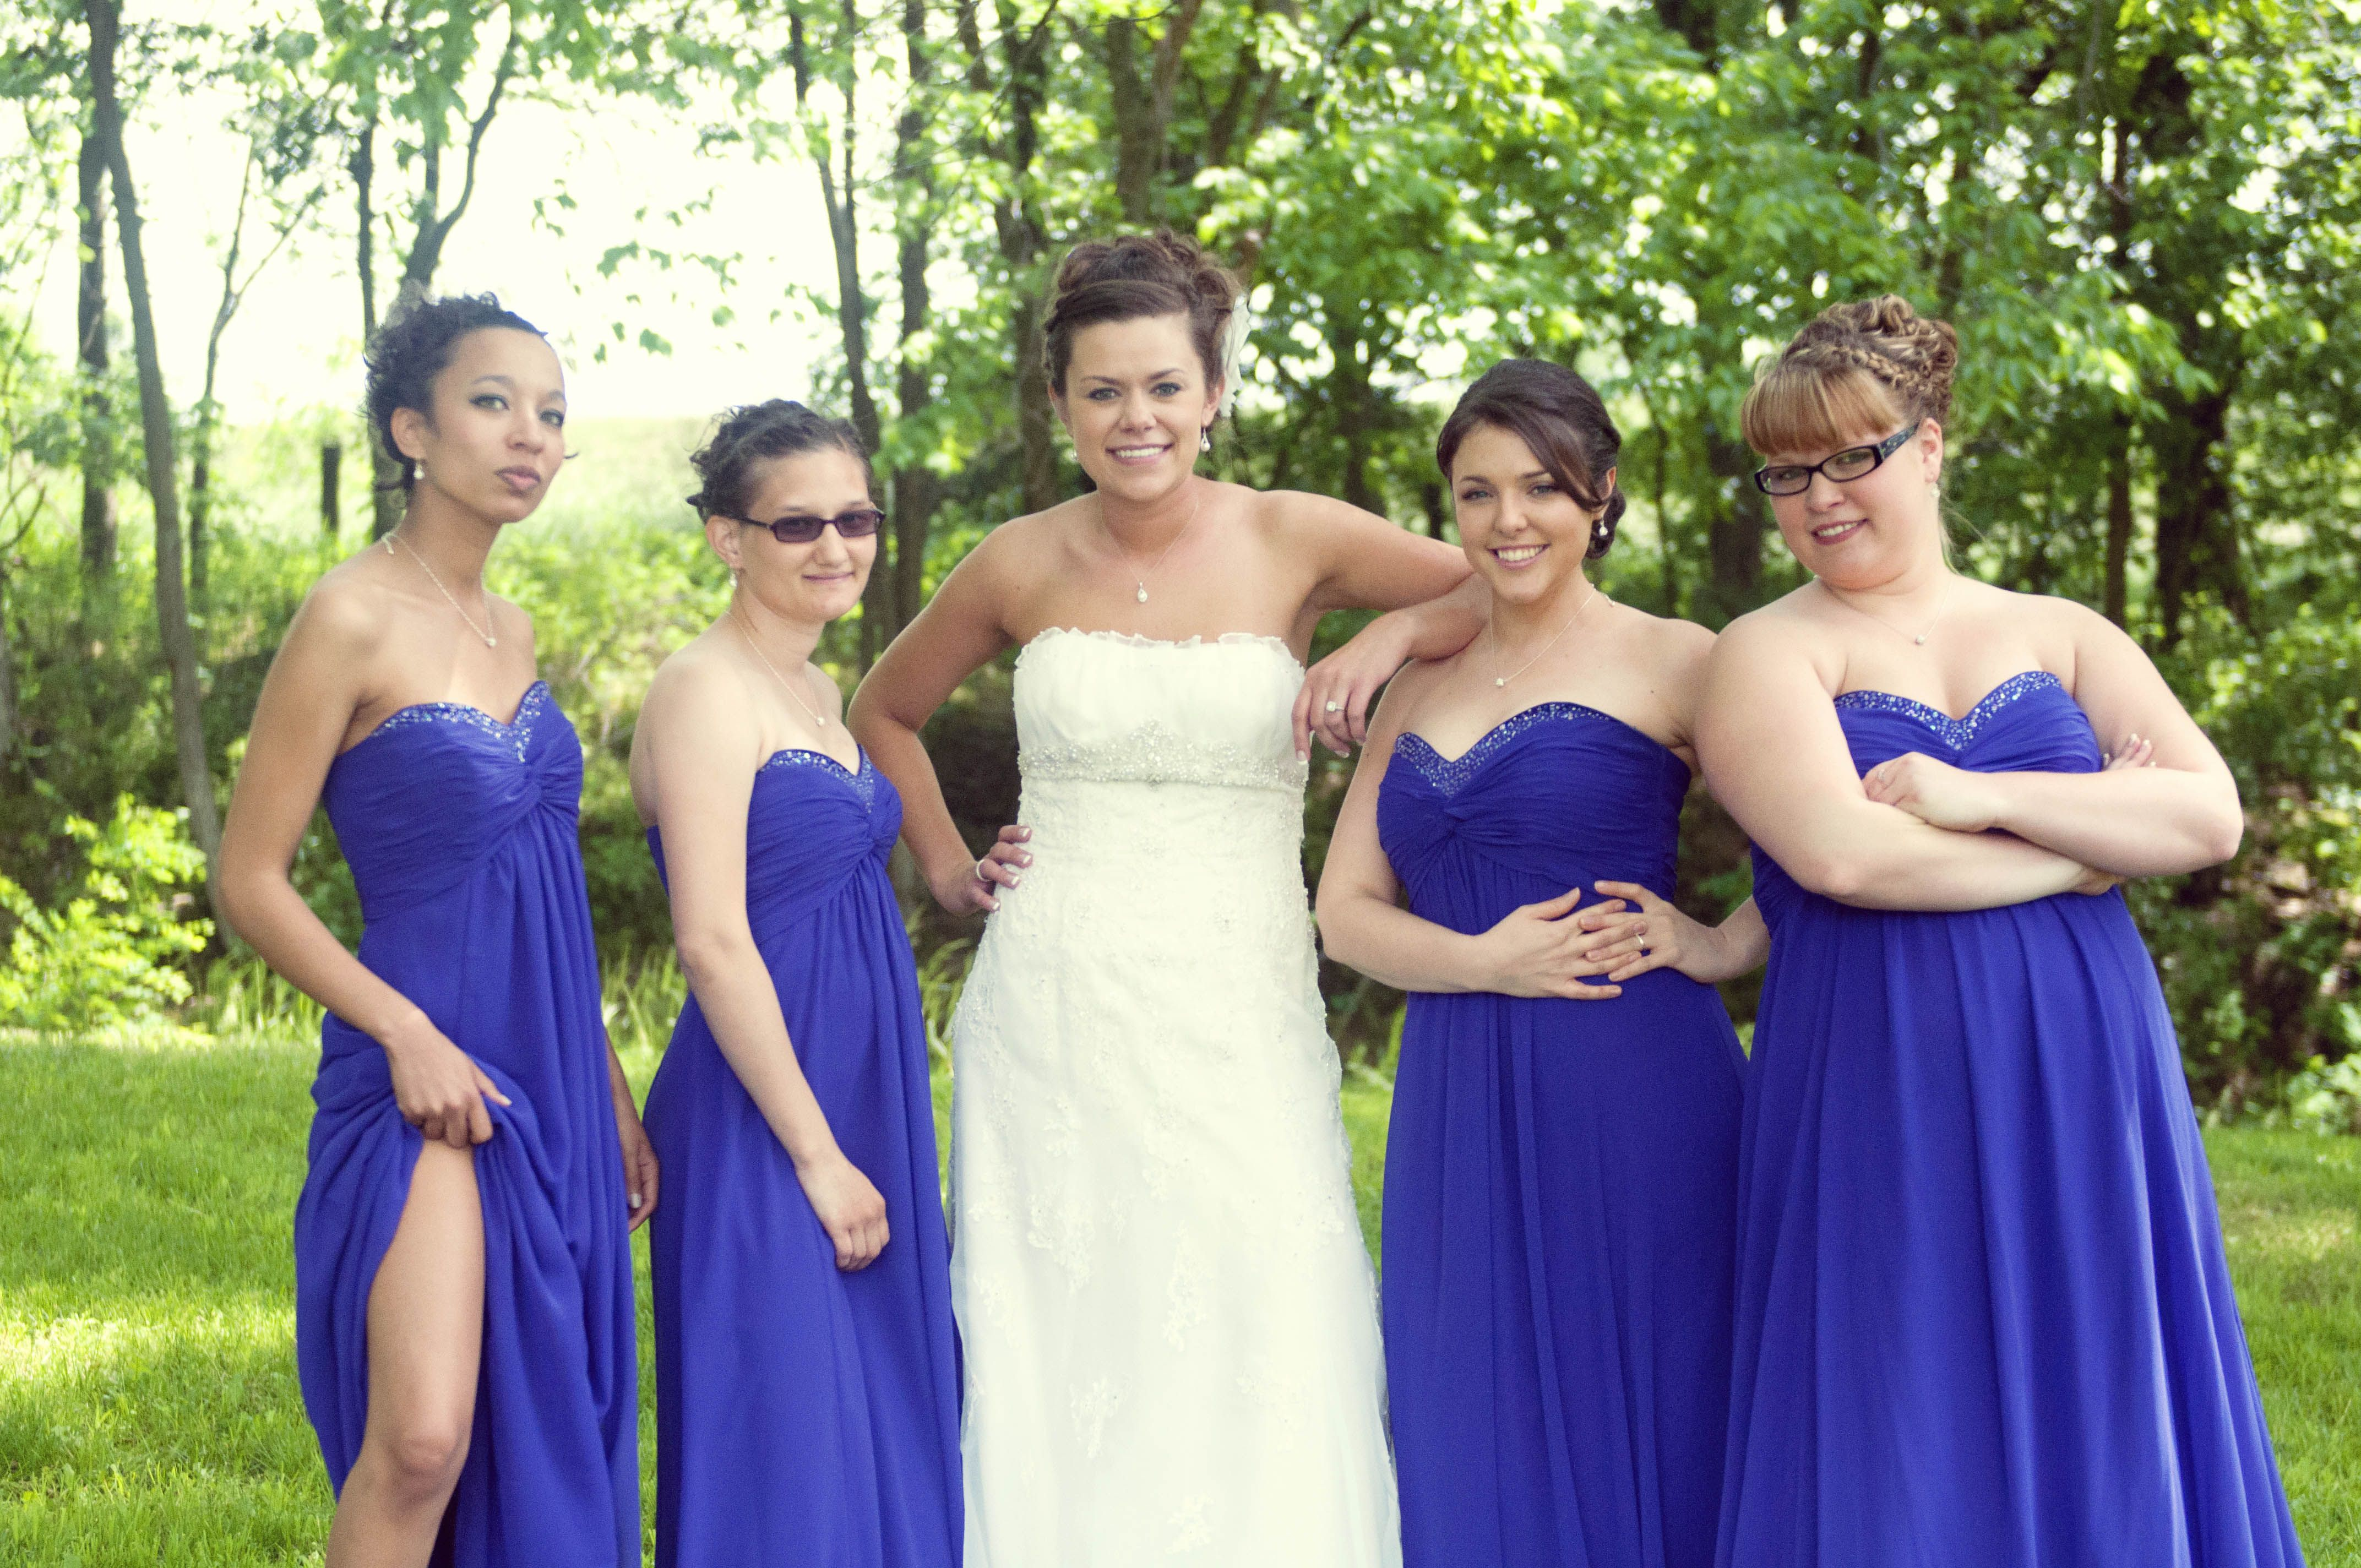 c0edc4d8718 My Bridesmaids were awesome! the dresses were from Davids bridal ...